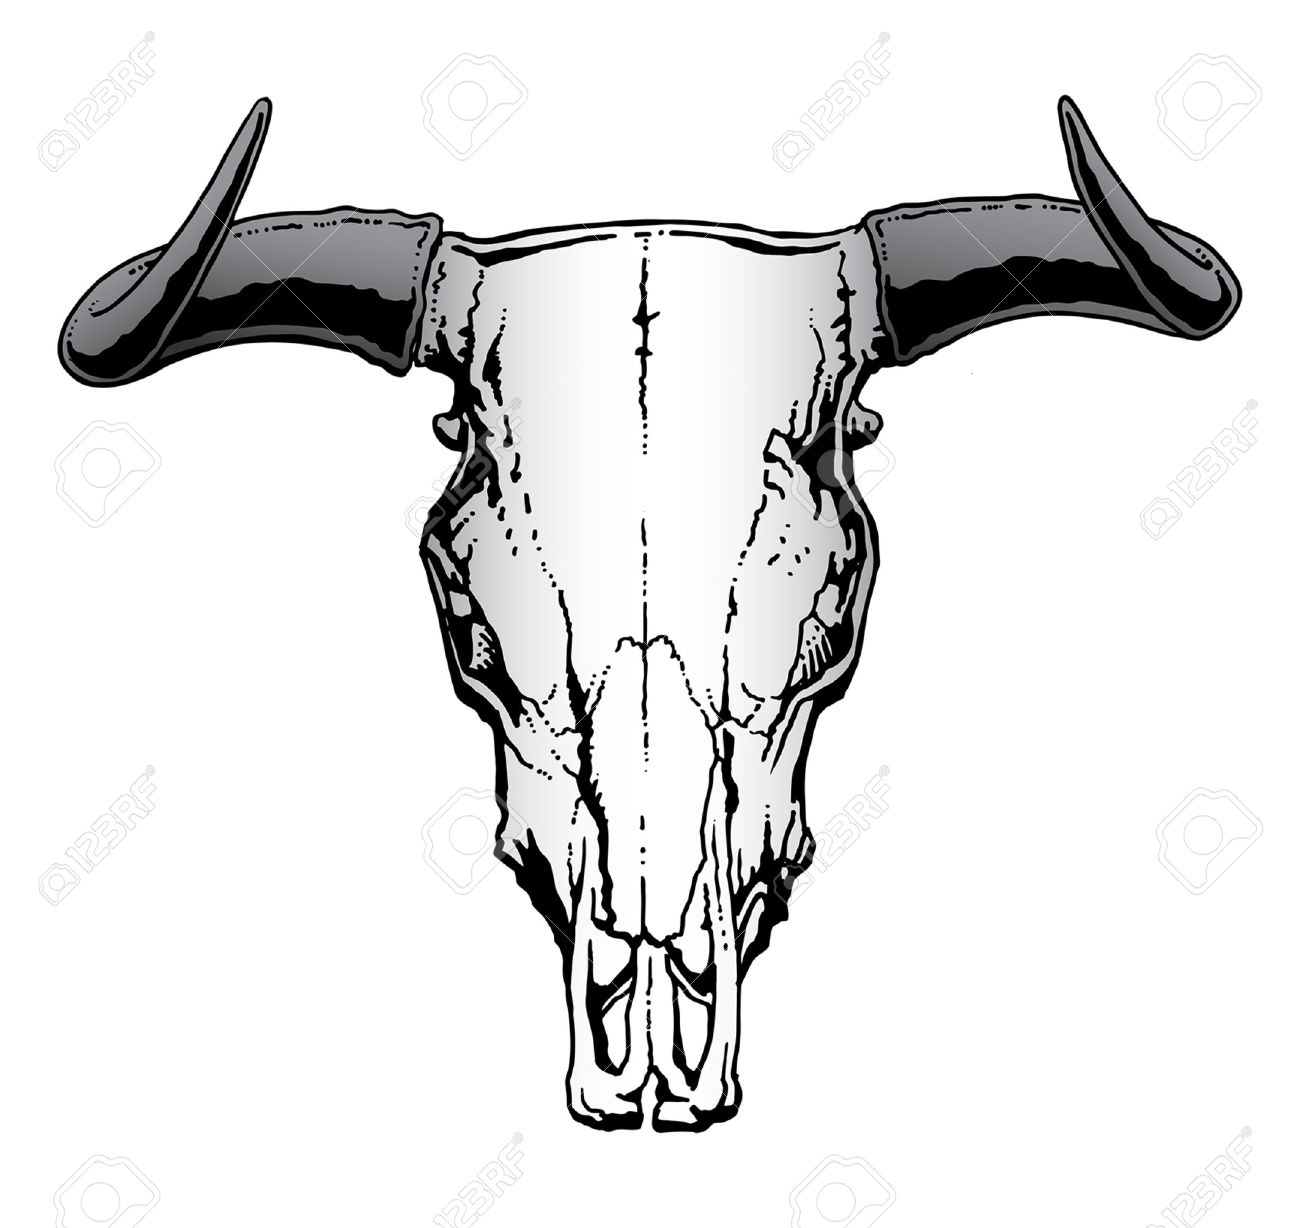 Steer Cliparts Free Download Best Steer Cliparts On Clipartmag Com